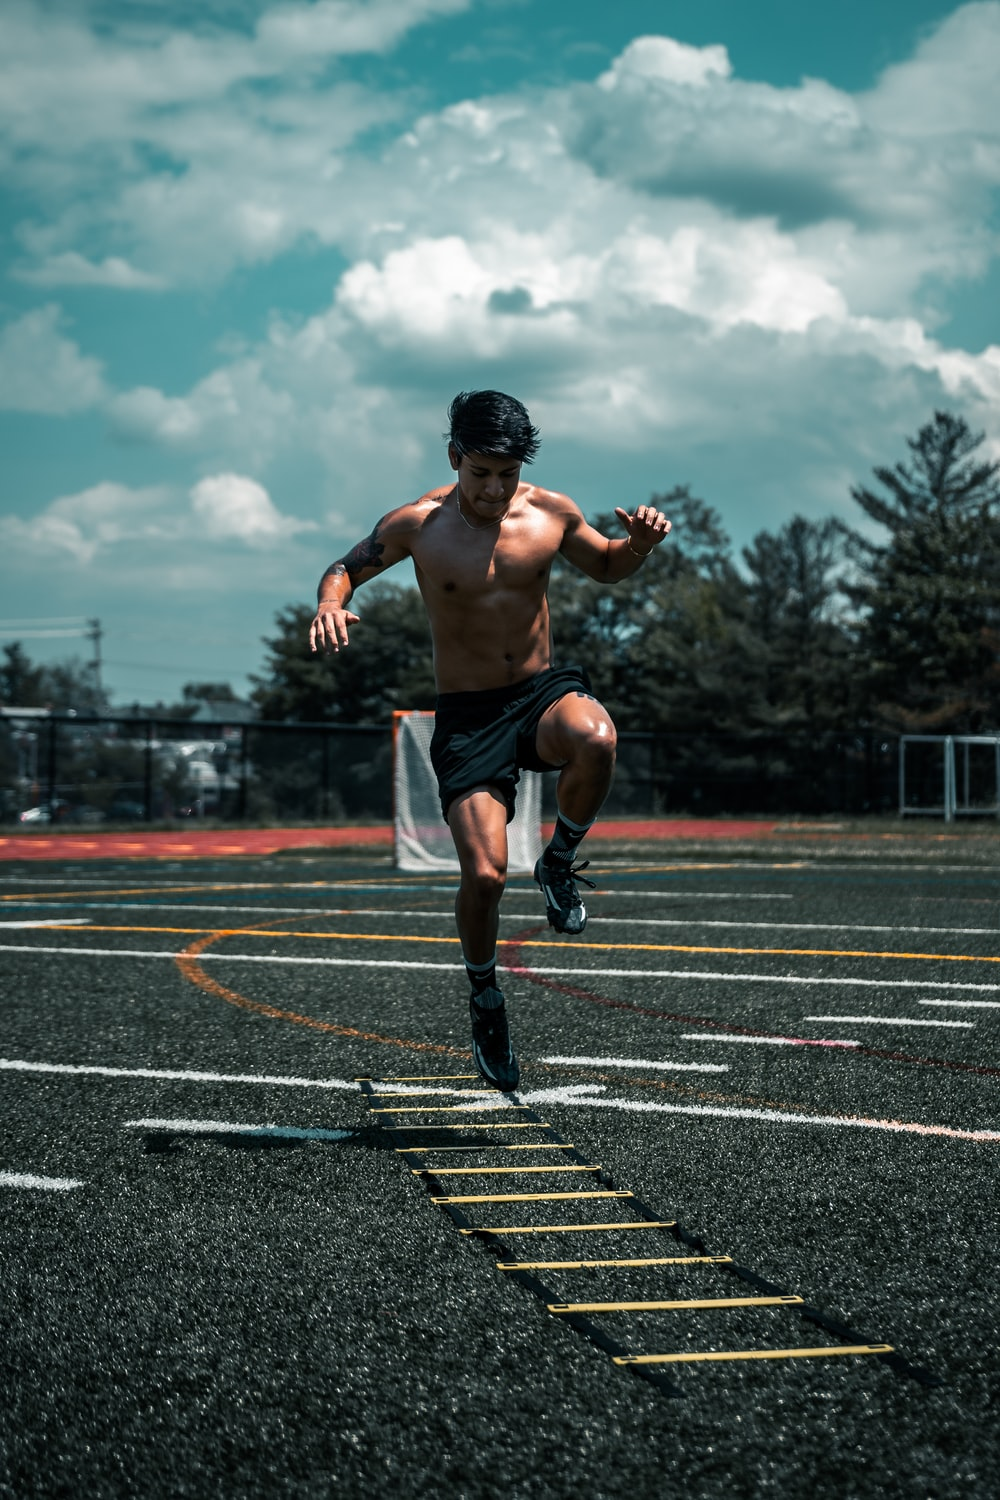 man in black shorts running on track field during daytime